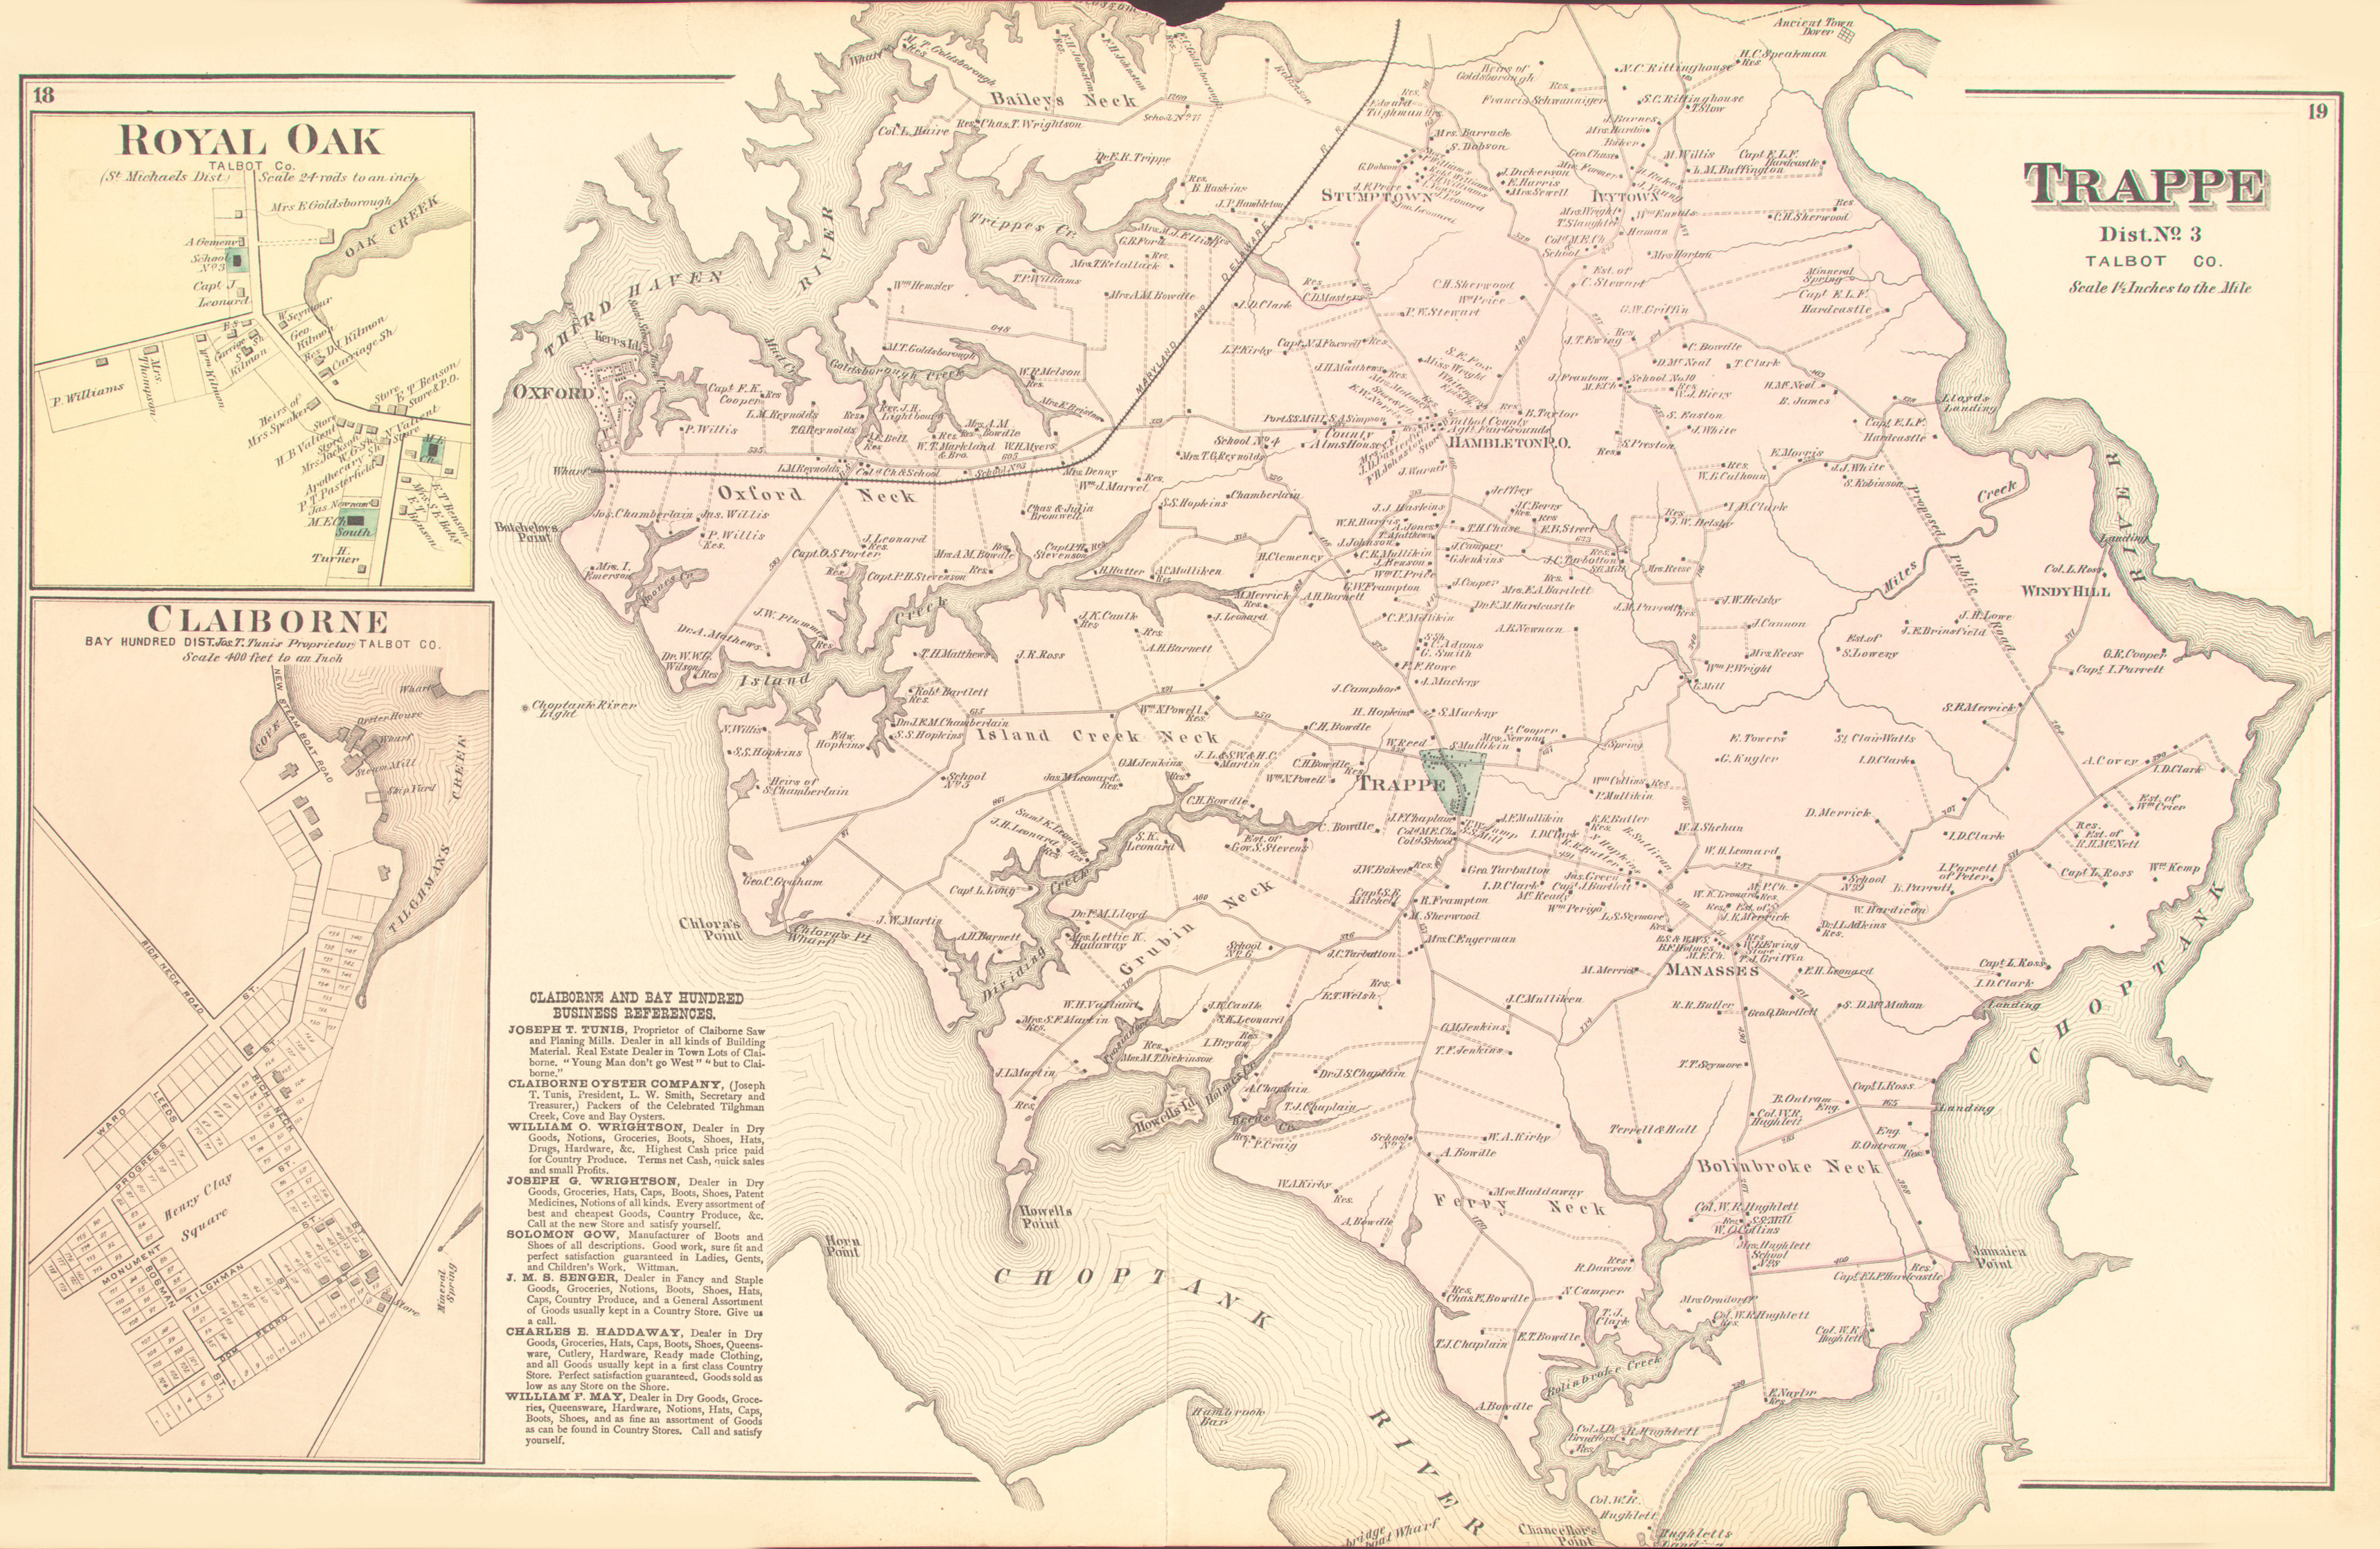 Talbot dorchester counties an illustrated atlas of talbot p18 19 trappe royal oak and claiborneg 2517mb gumiabroncs Choice Image